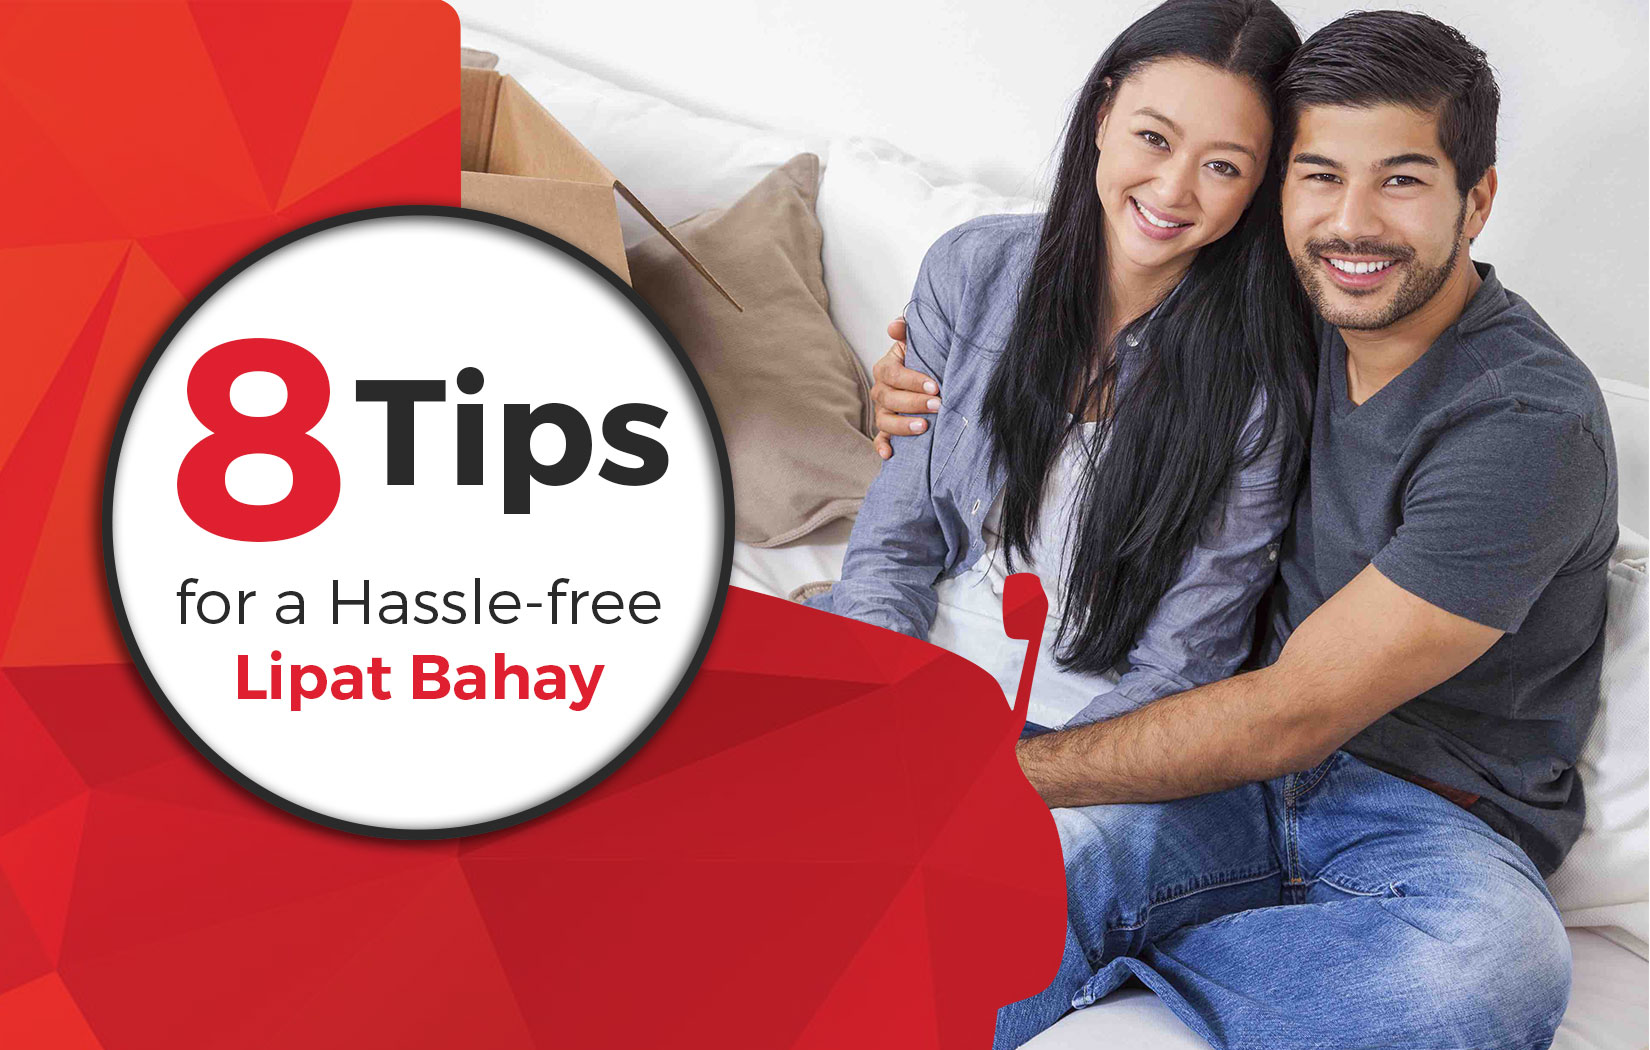 8 Tips for a Hassle Free Lipat Bahay